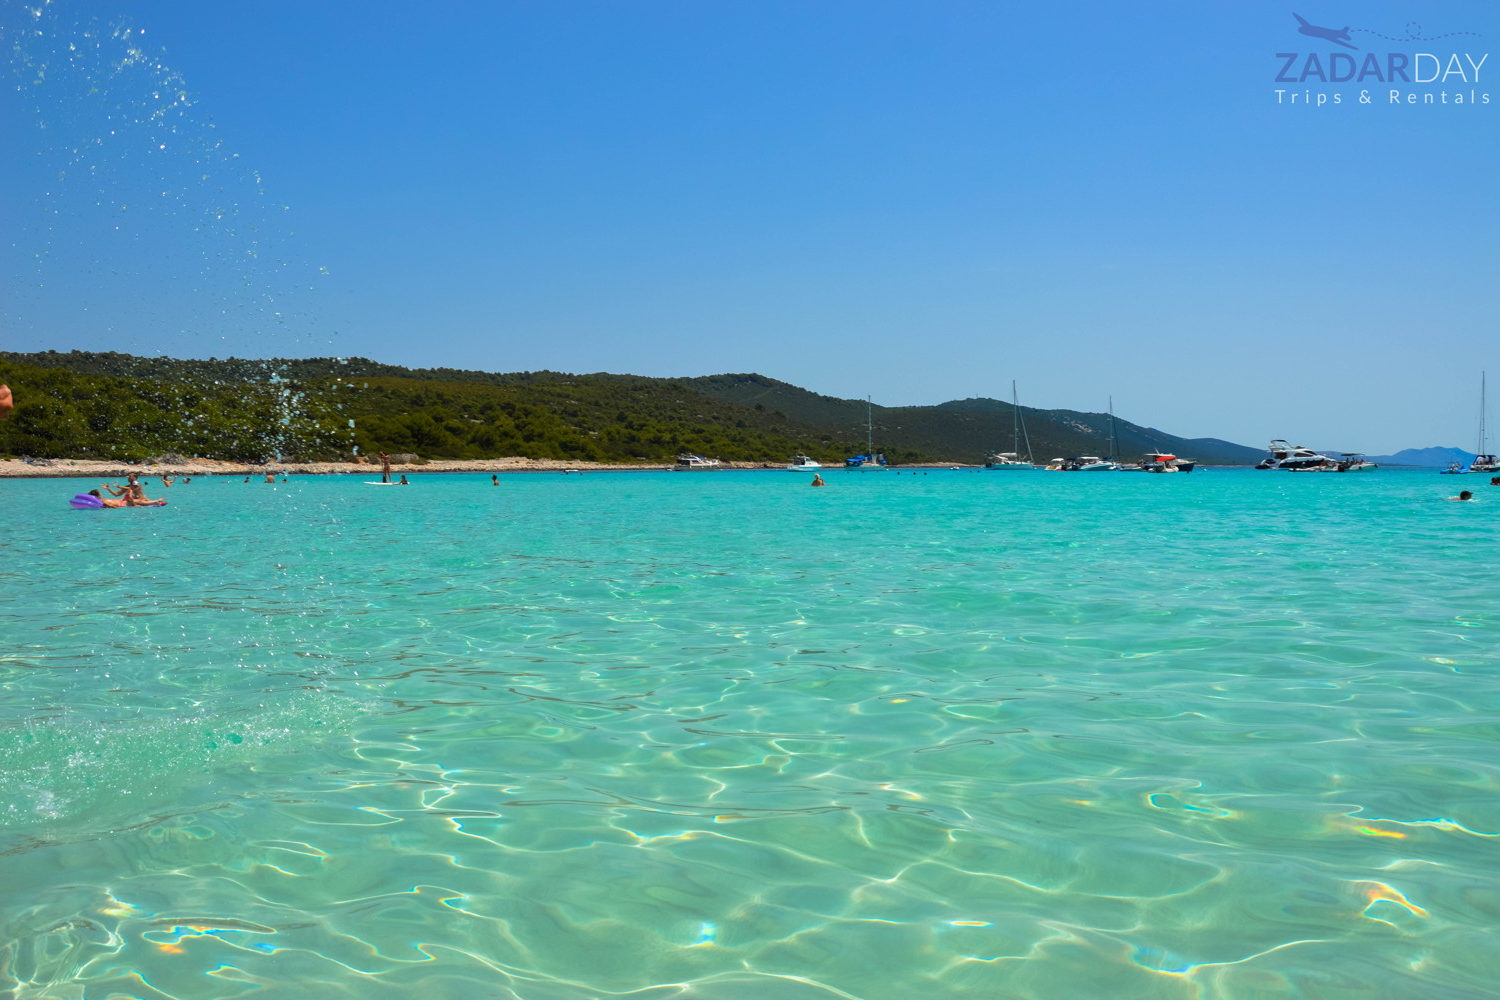 Sakarun beach Croatia